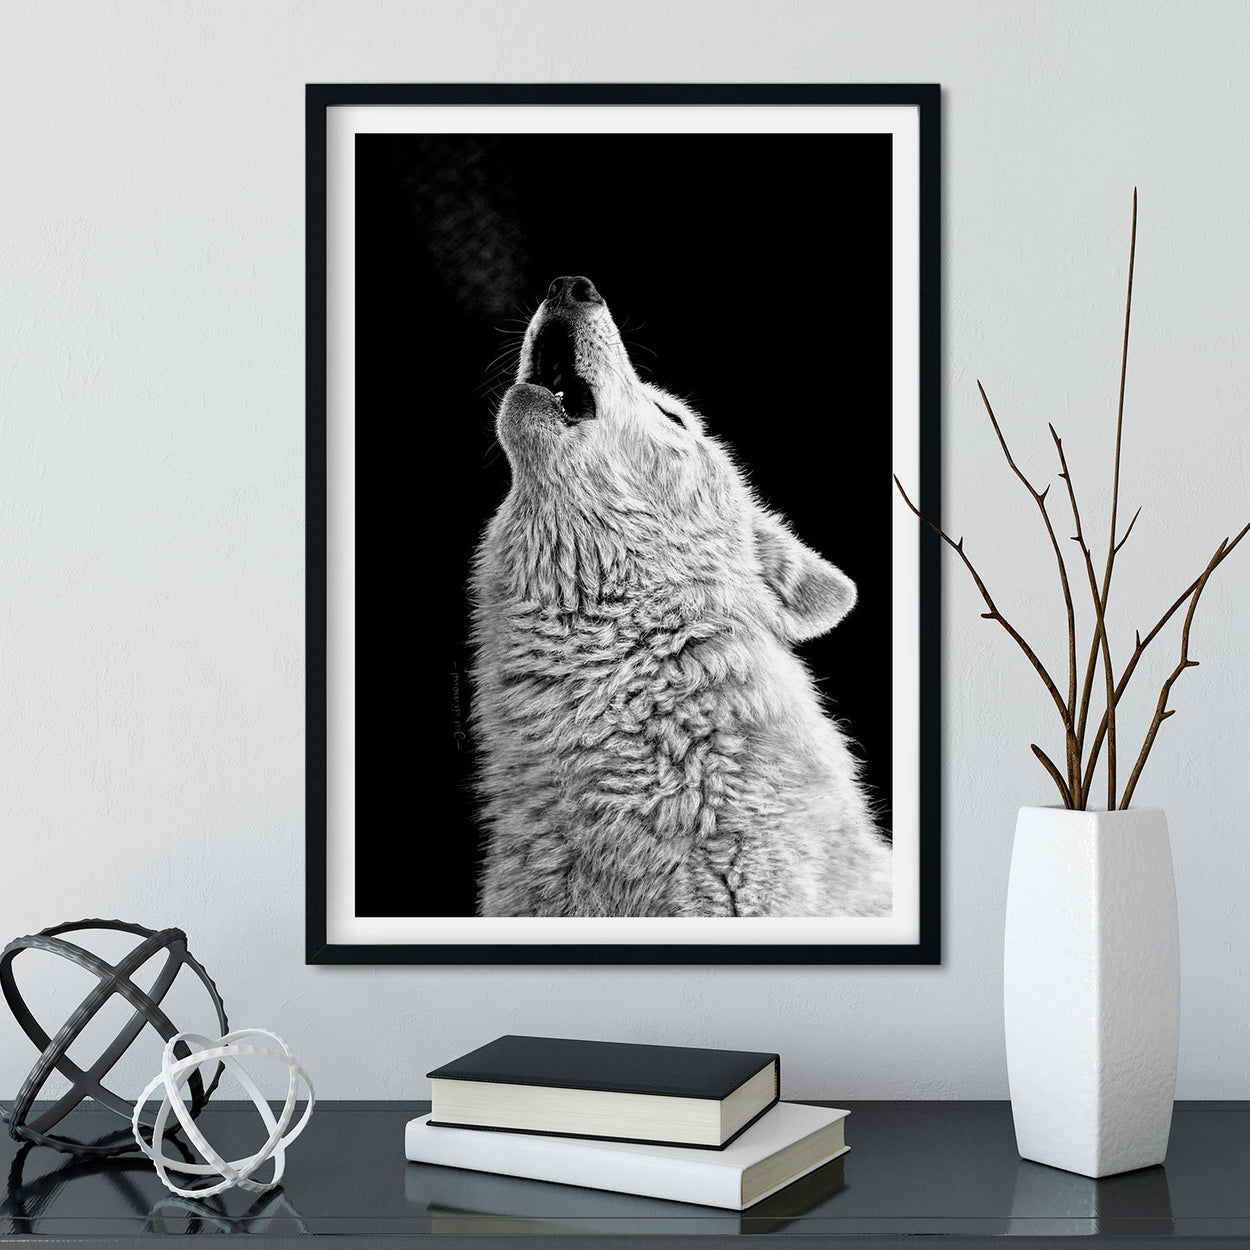 Howling Wolf Wall Art Framed - The Thriving Wild